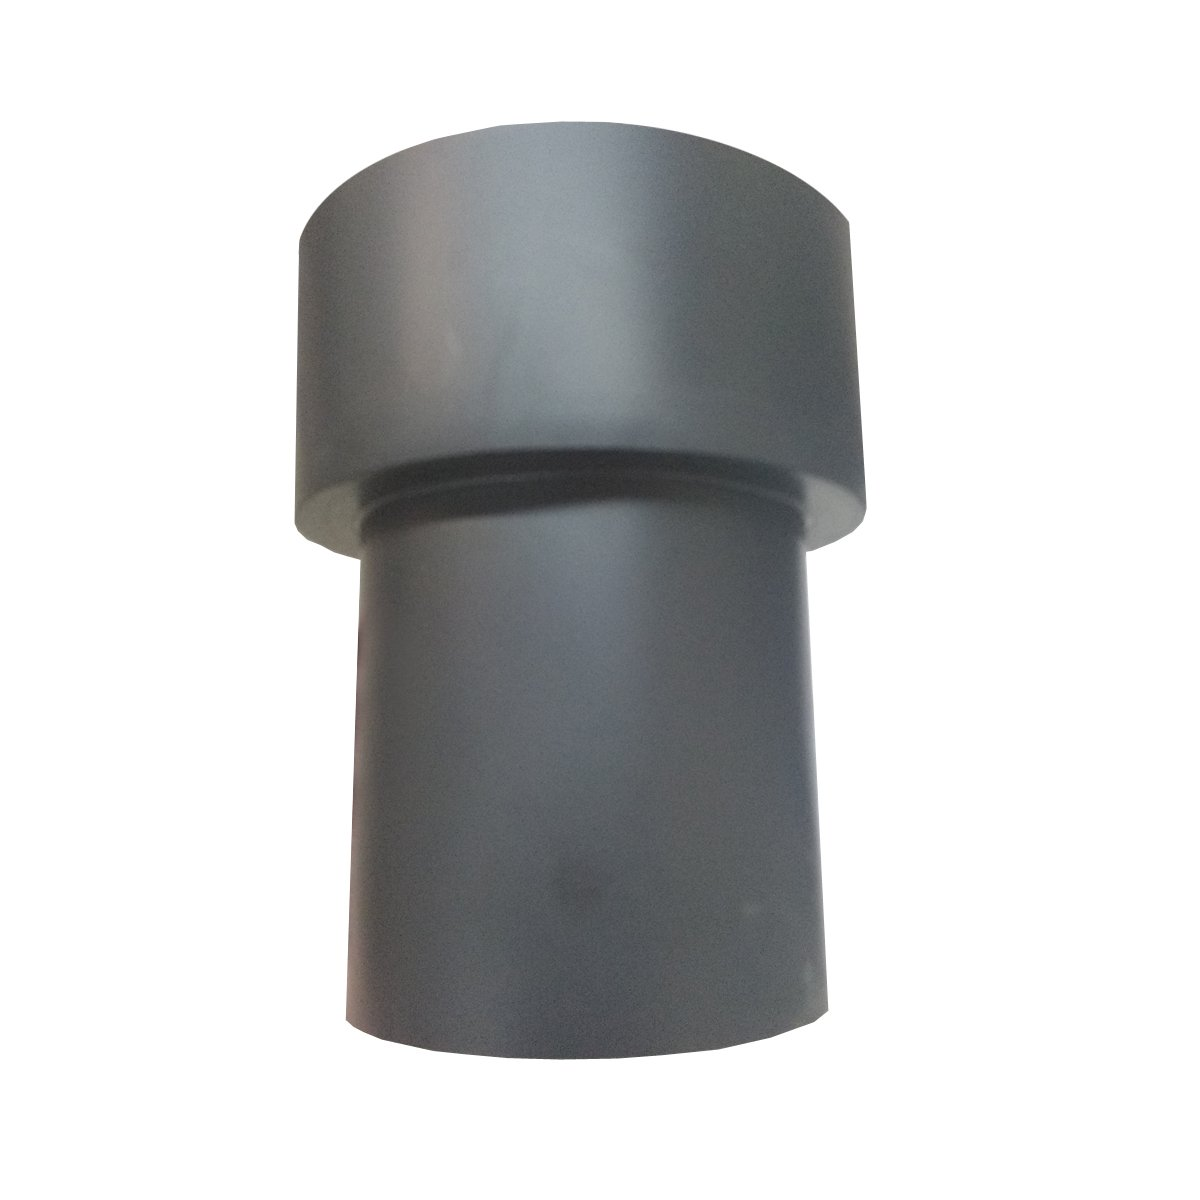 Harvia Chimney Adapter Pipe for Wood Burning Sauna Heaters